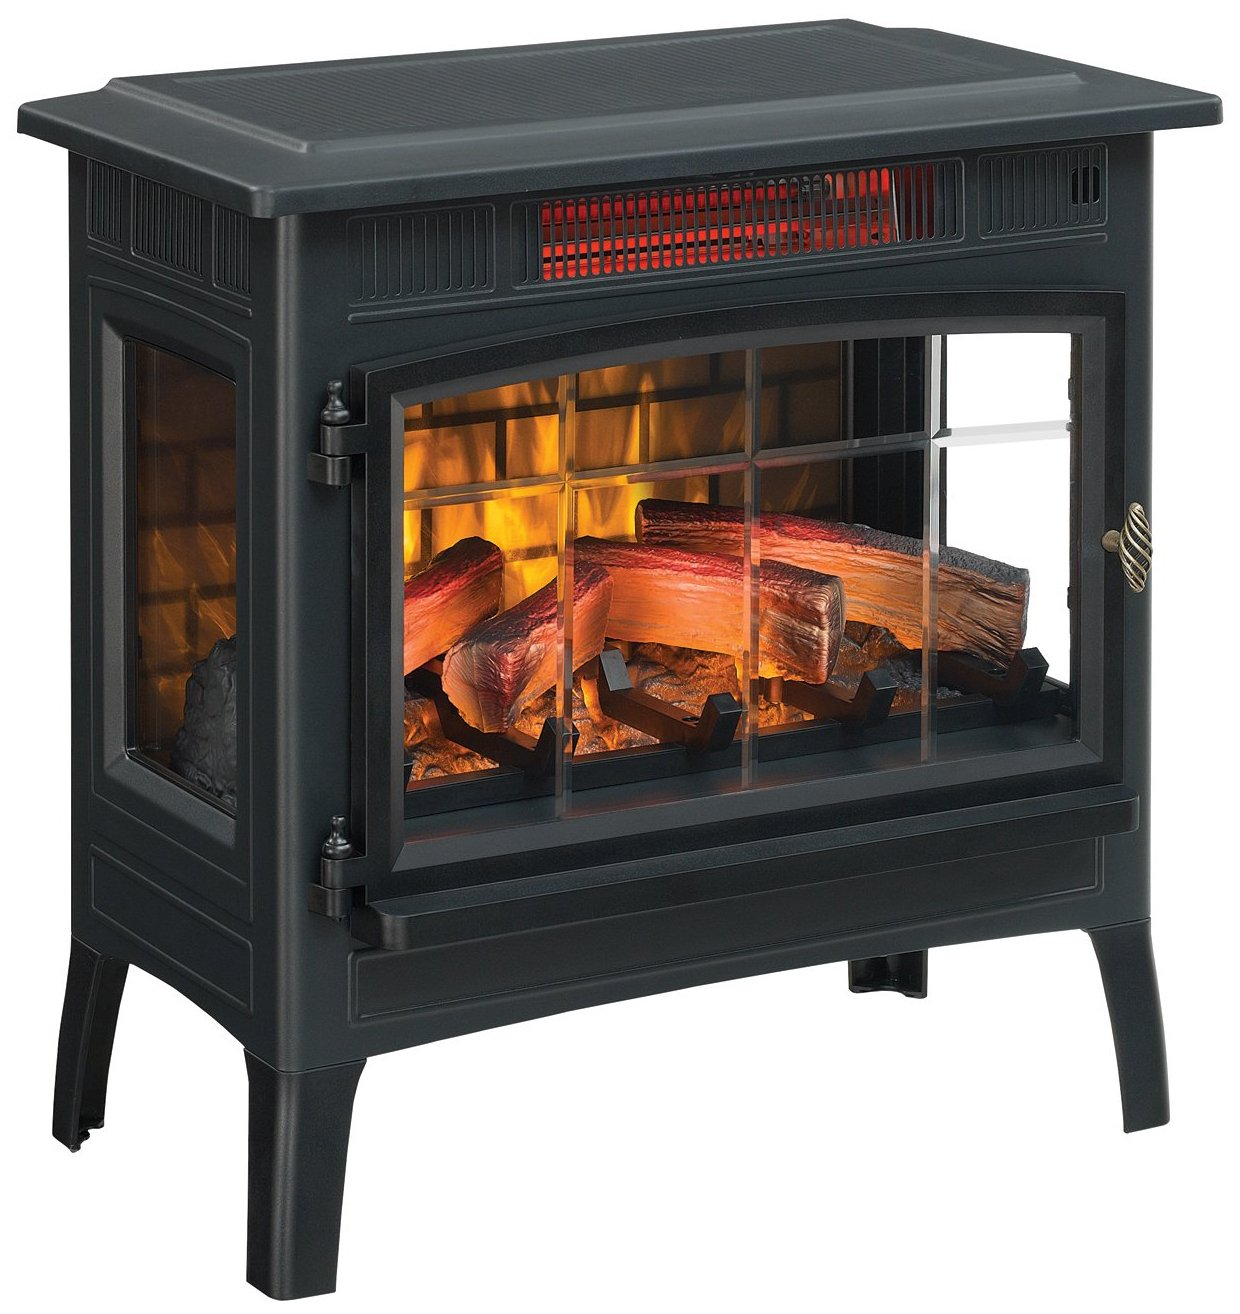 Duraflame Electric Infrared Quartz Fireplace Stove with 3D Flame Effect, Black, by Duraflame Electric